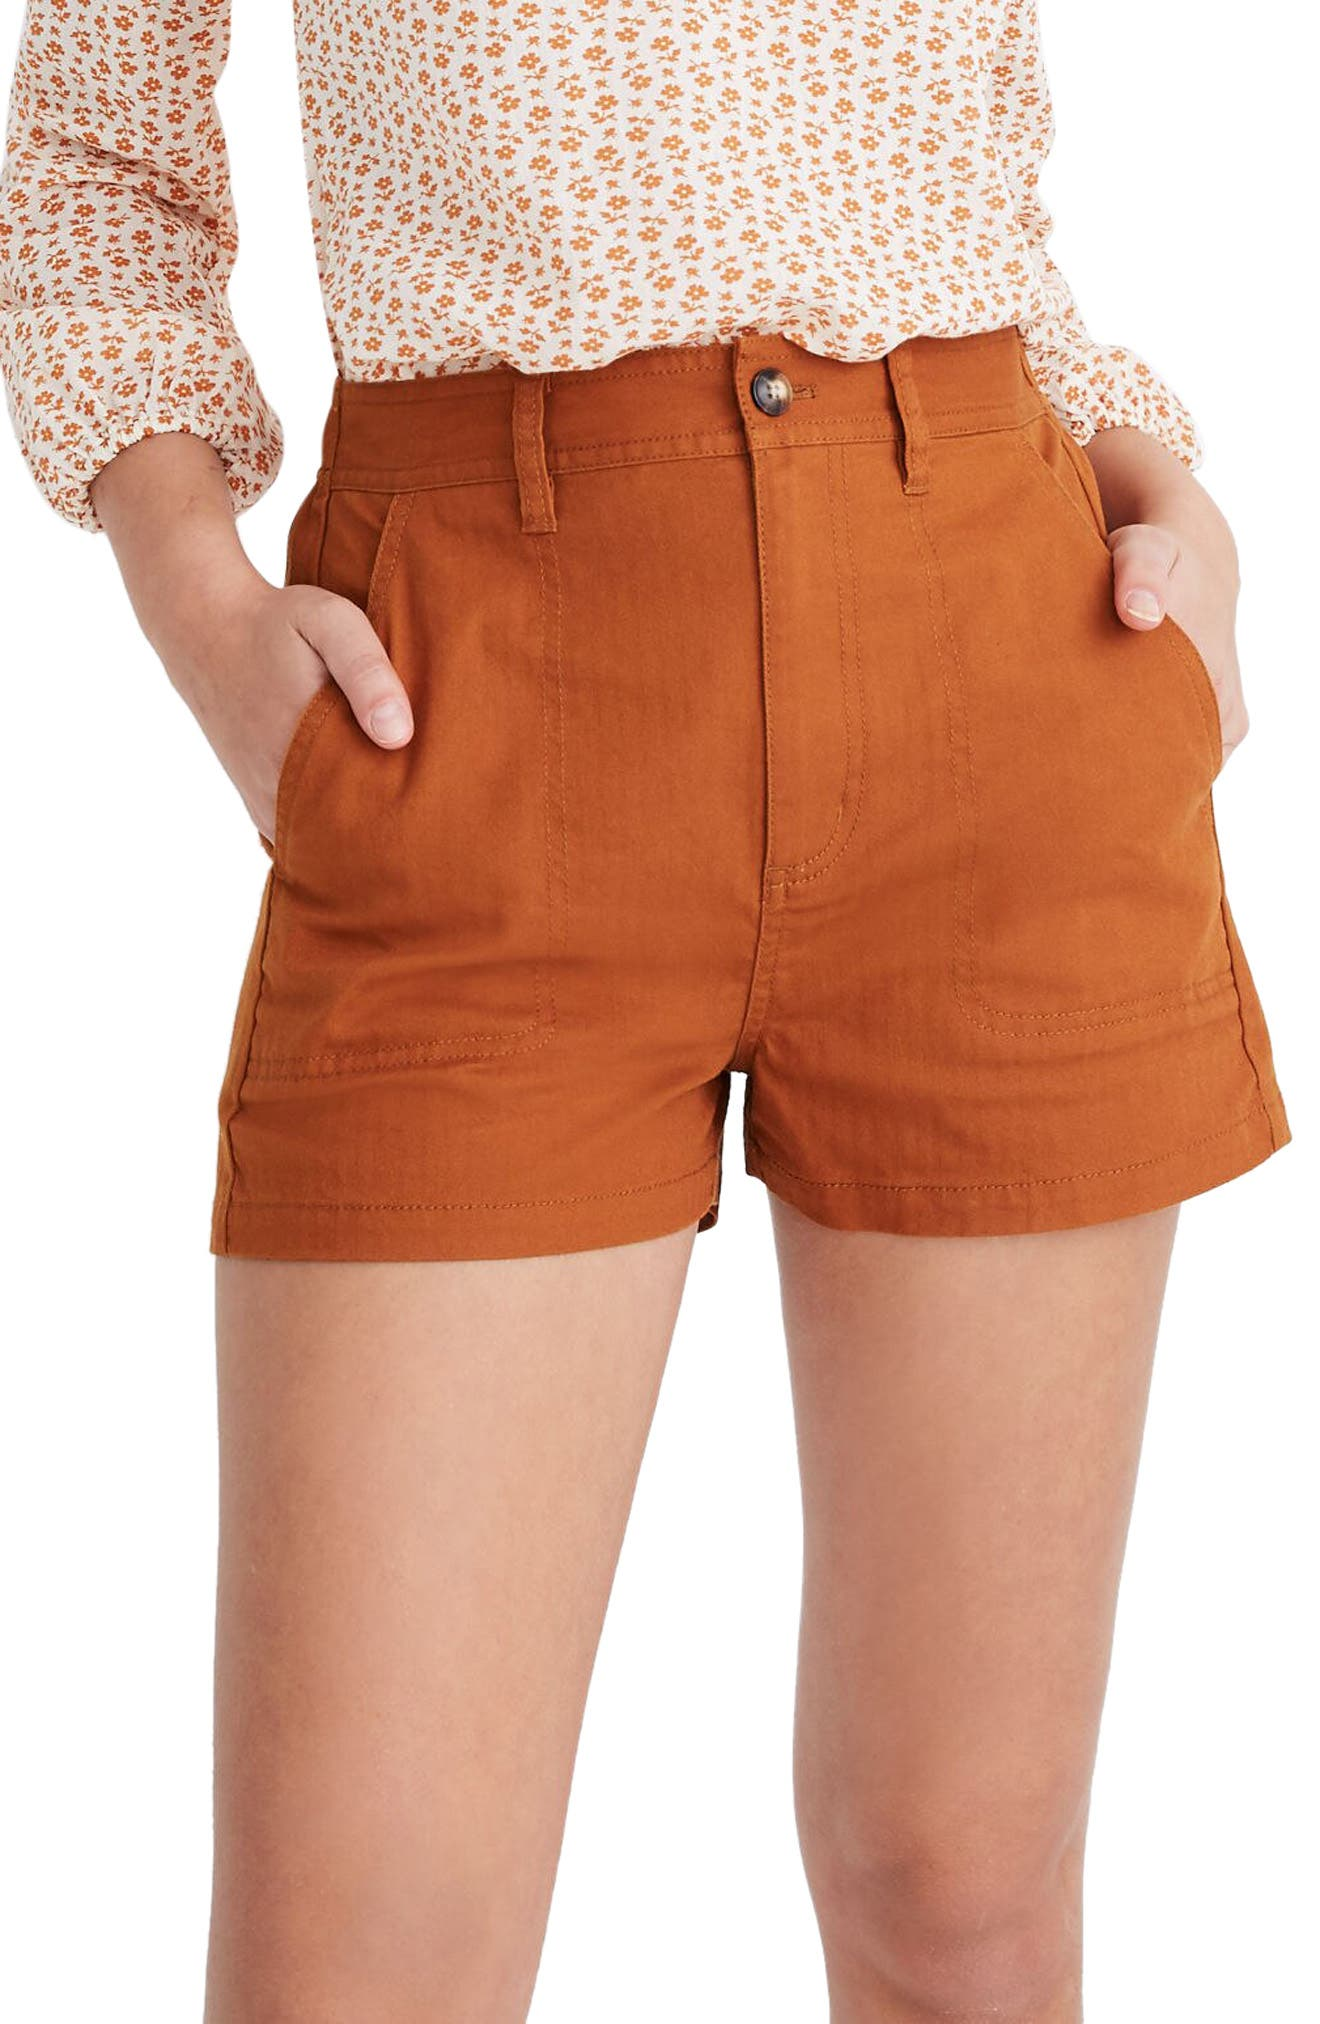 Vintage High Waisted Shorts, Sailor Shorts, Retro Shorts Womens Madewell Camp Shorts $34.65 AT vintagedancer.com